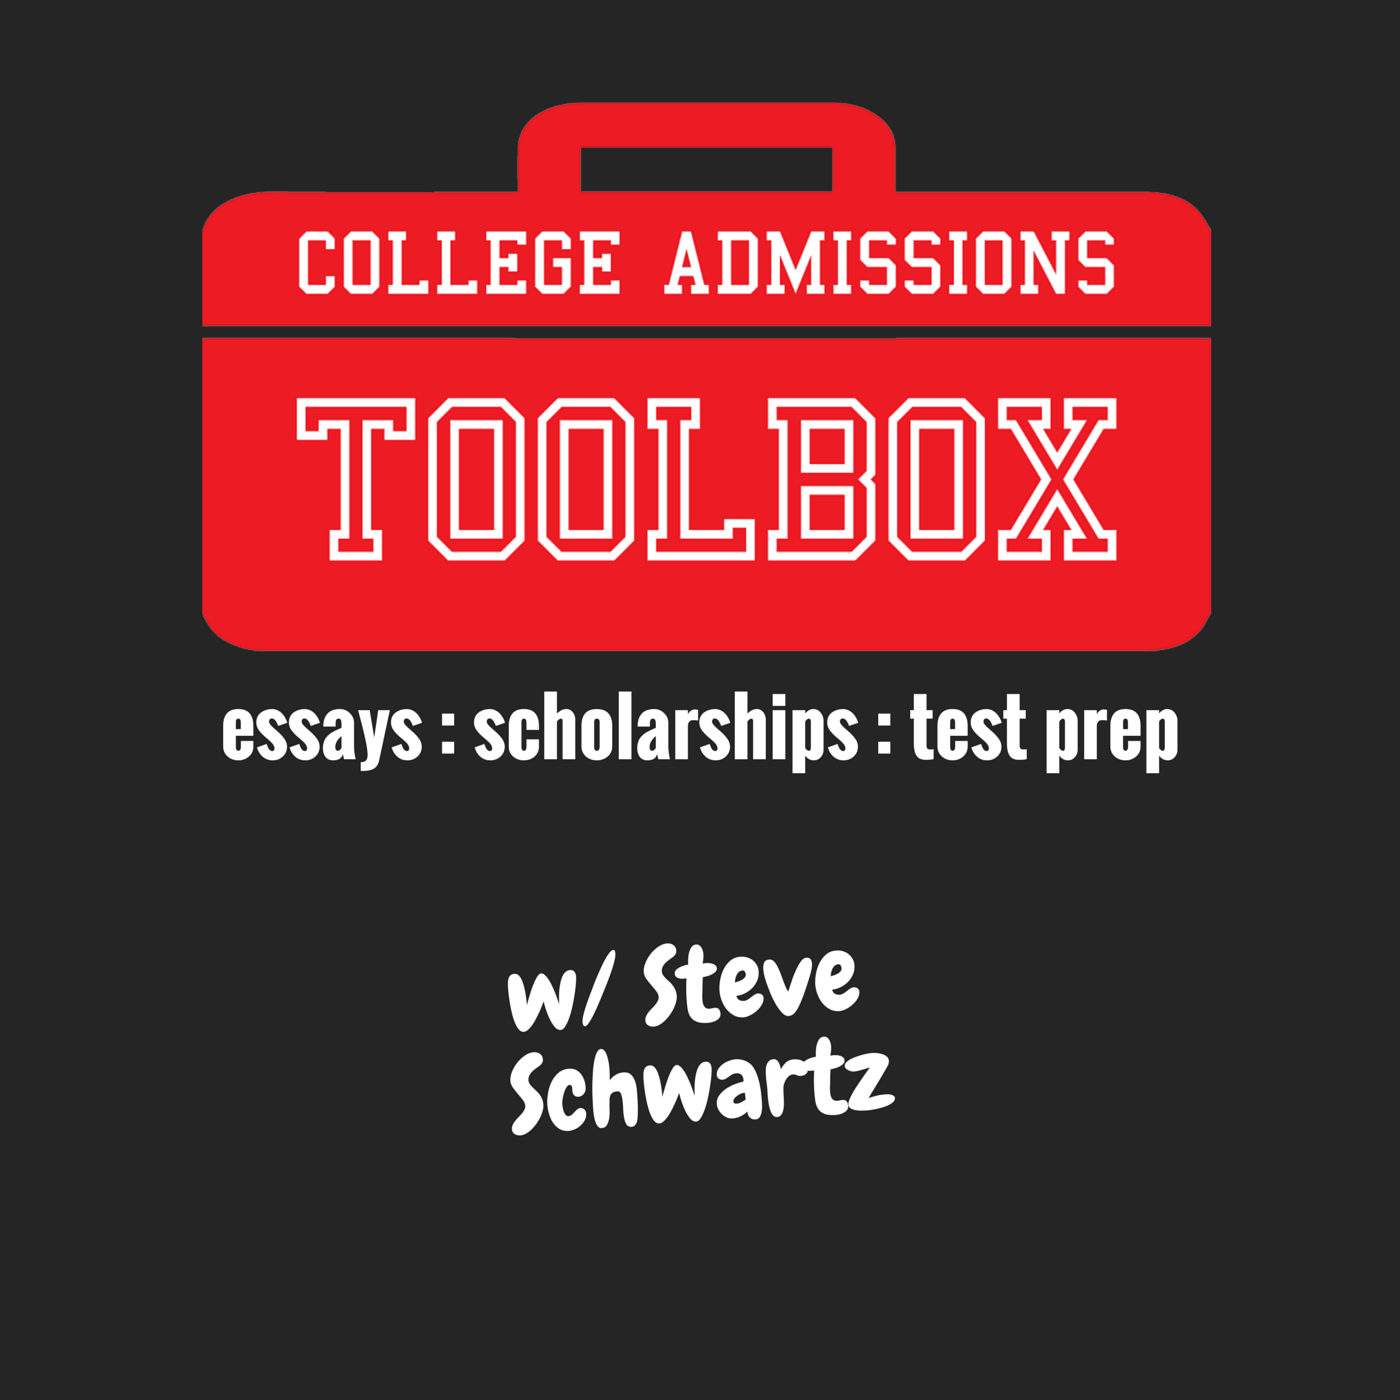 How To Write A College Application Essay That Stands Out Essays College Admissions Toolbox Podcast Artwork How To Write A College Application Essay That Stands Out